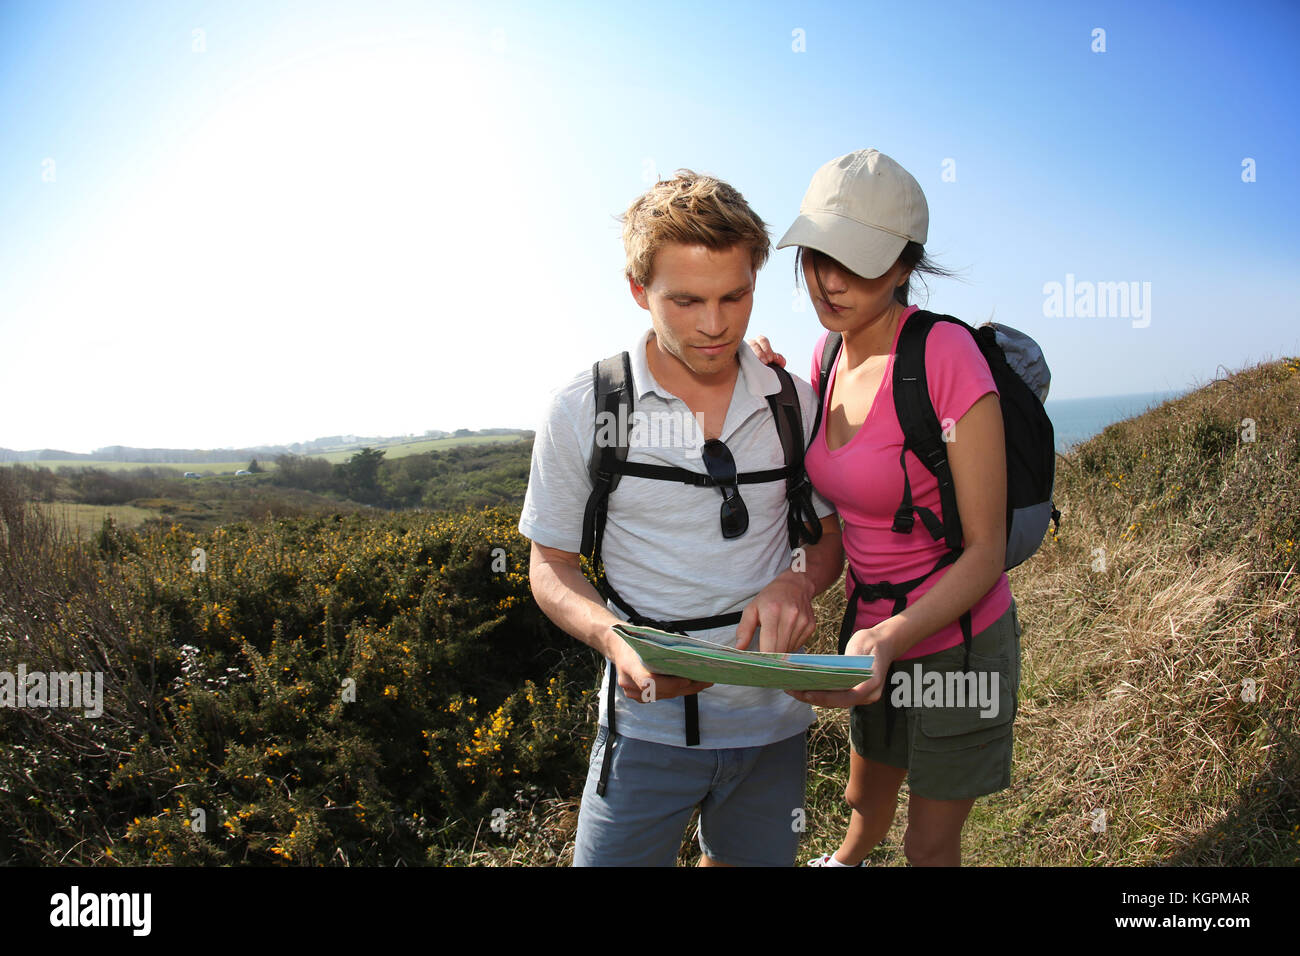 Hikers in country path looking at map - Stock Image